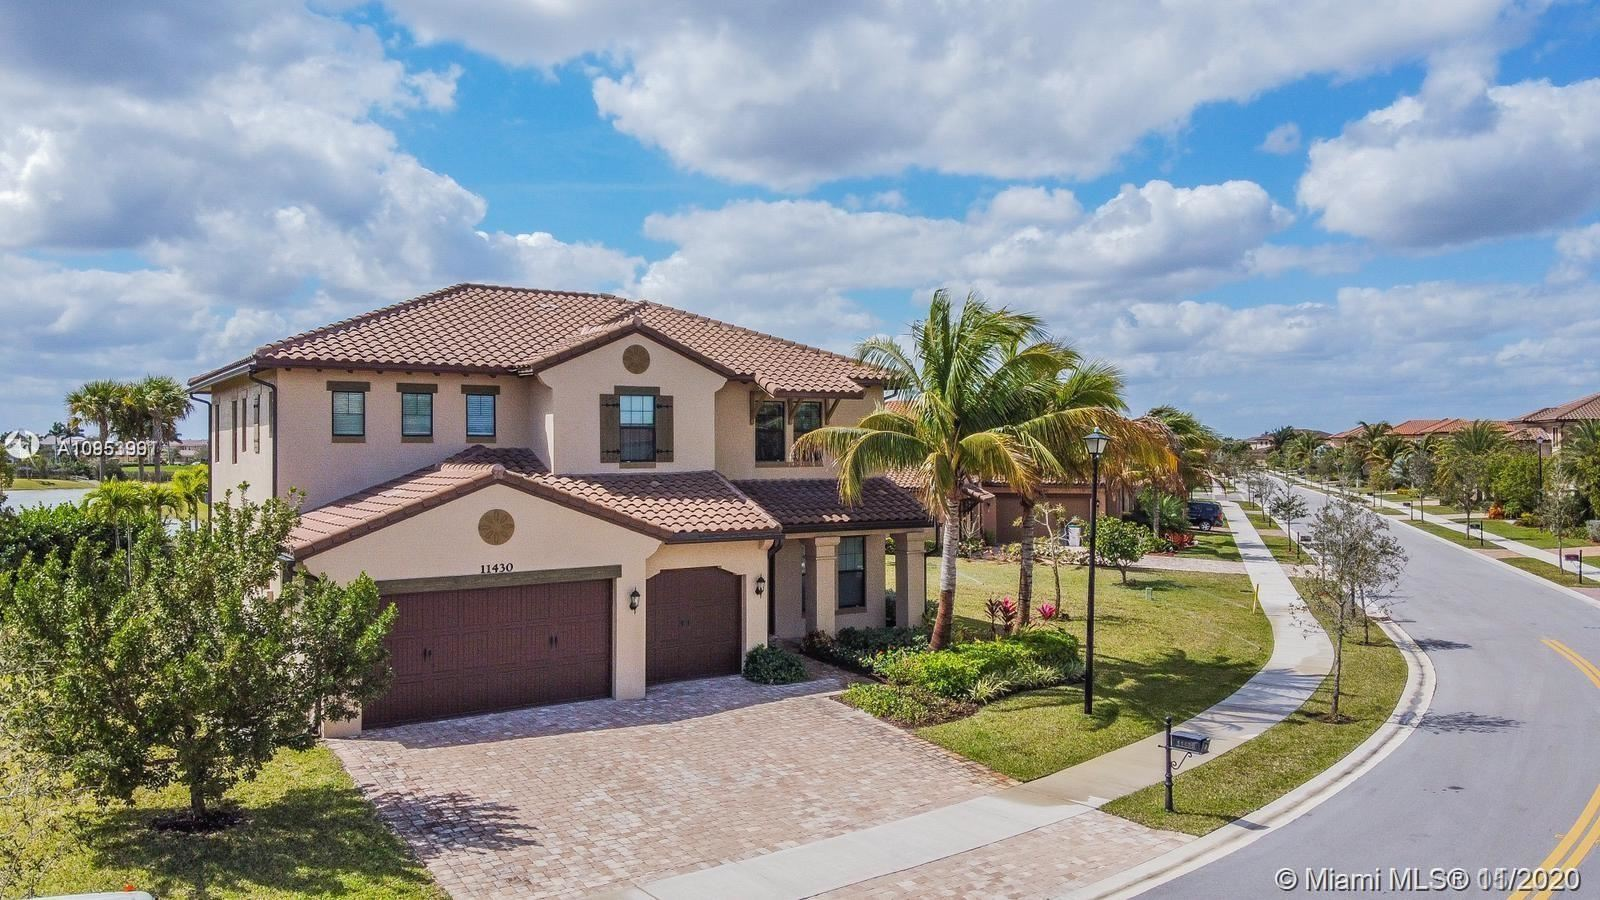 Photo of 11430 NW 83rd Way, Parkland, FL 33076 (MLS # A10953991)